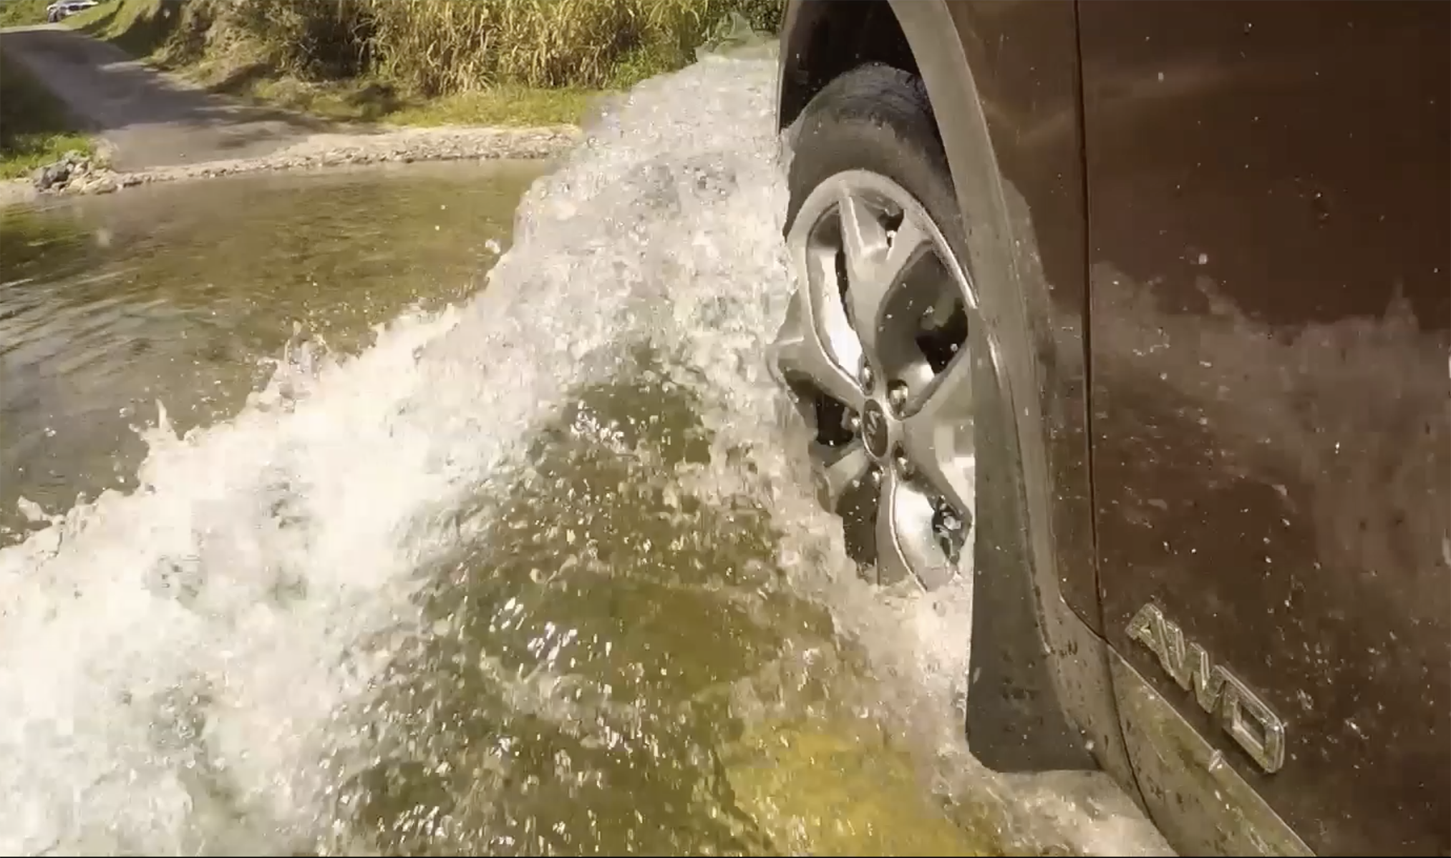 Parking in the drink - perhaps because you get stuck - can force water into your powertrain's most expensive hardware